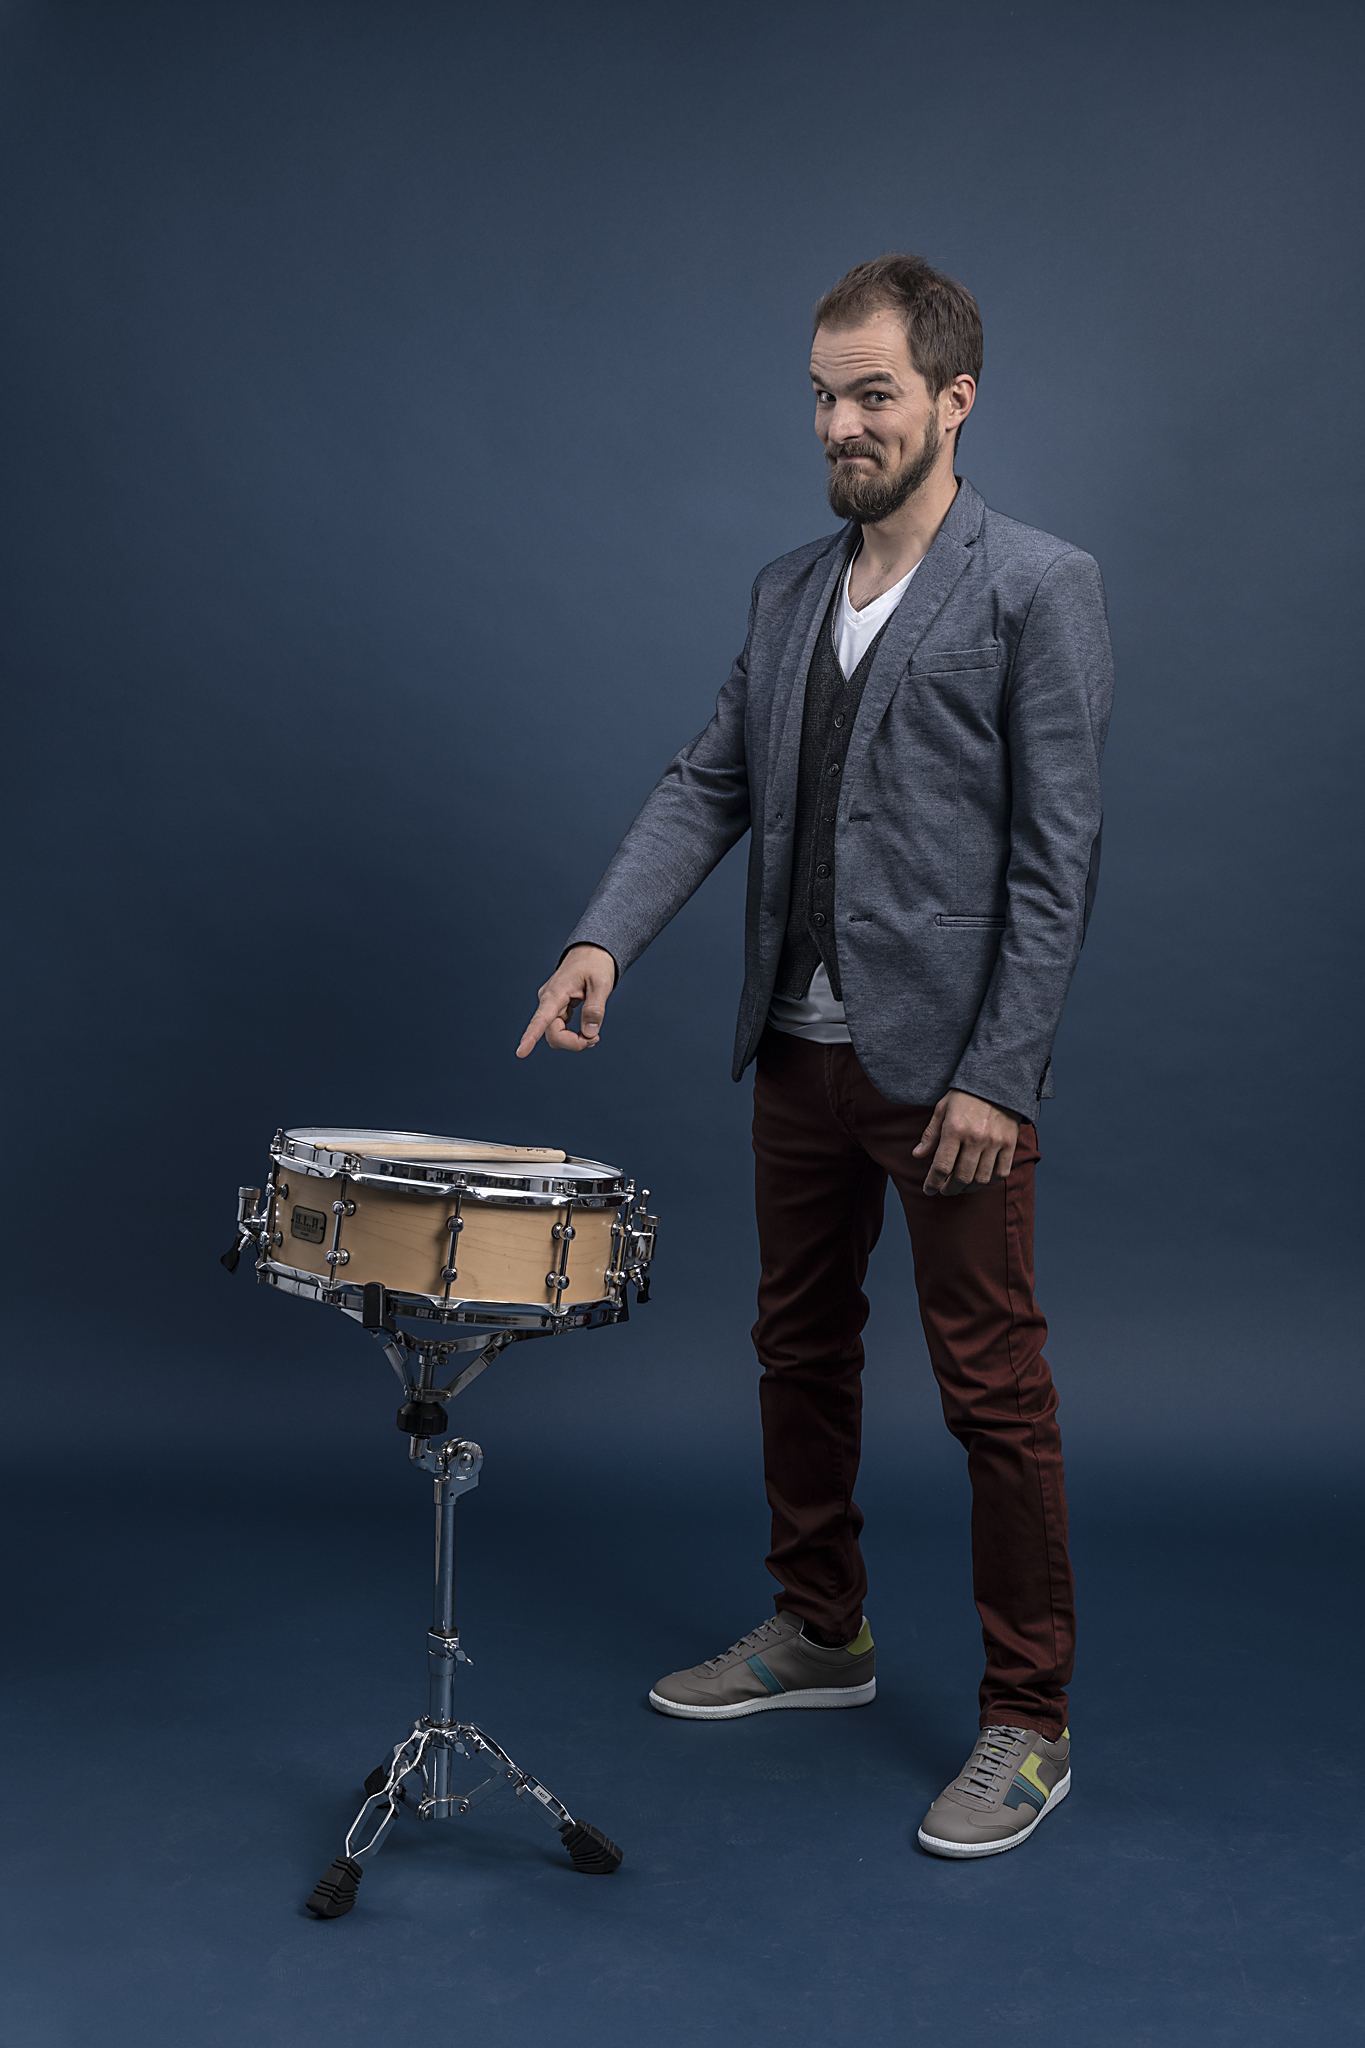 musician with drum